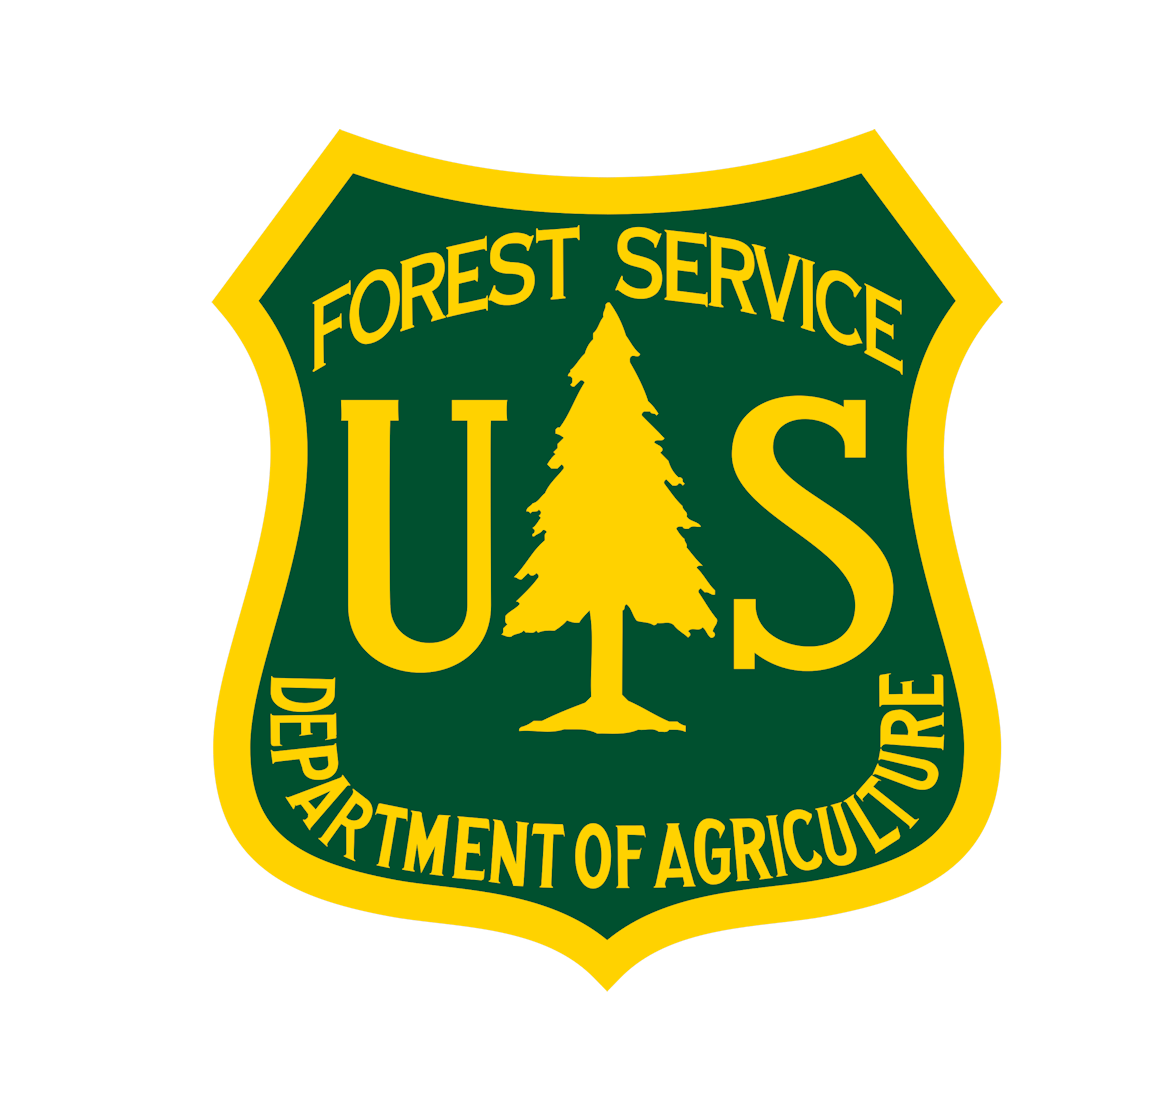 Department of Agriculture - Forest Service Logo